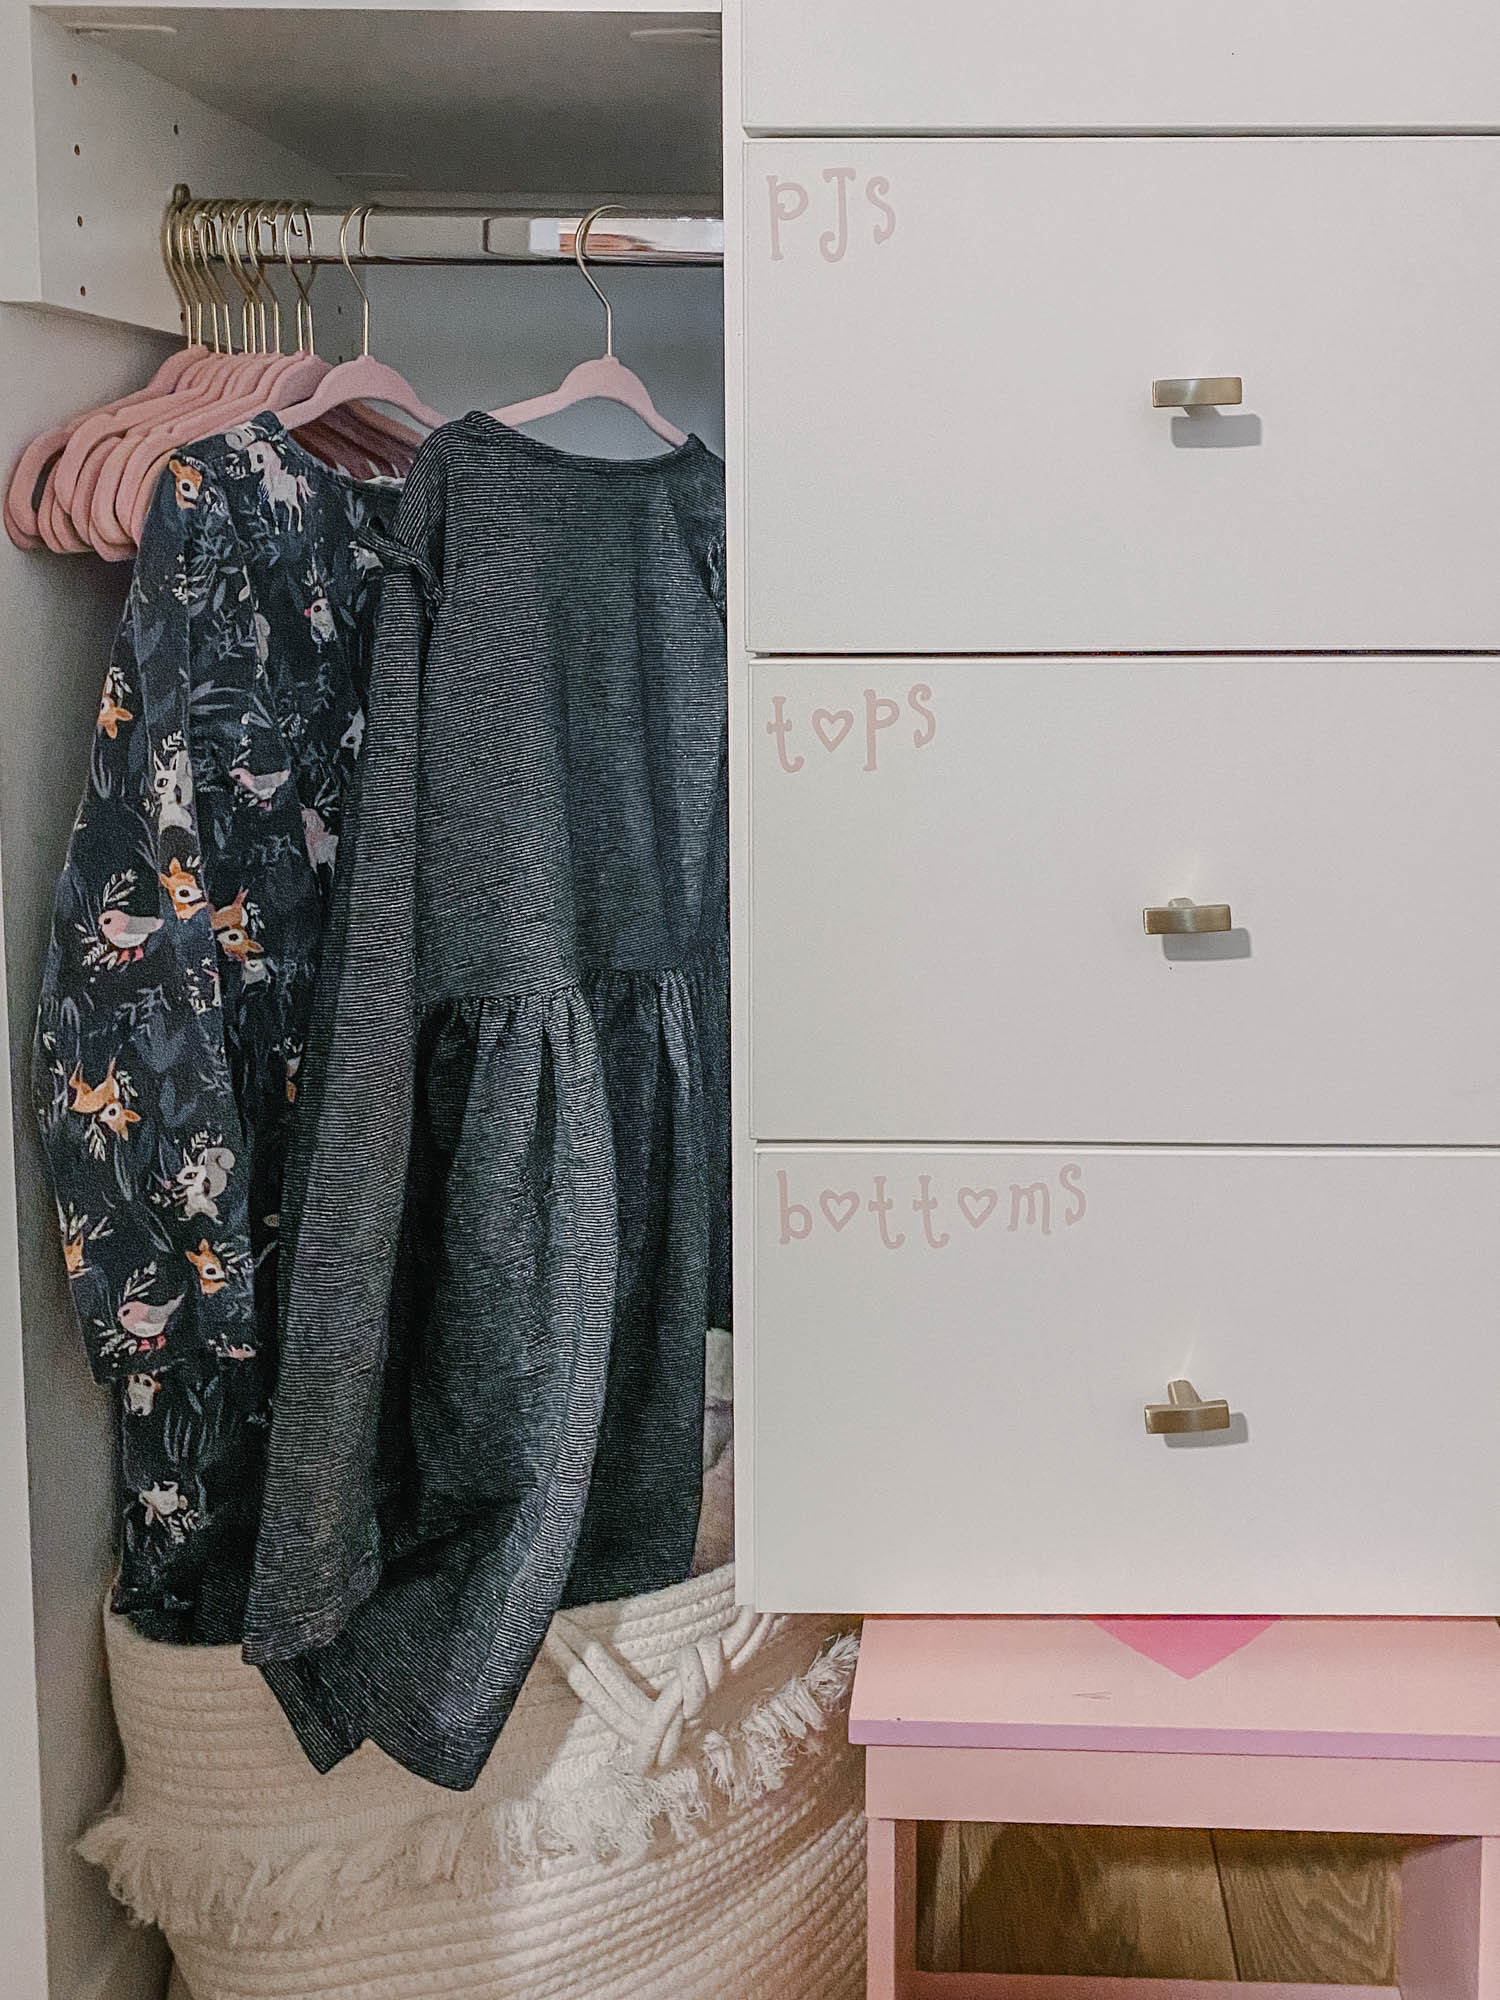 Label kids drawers to help them learn how to put away laundry